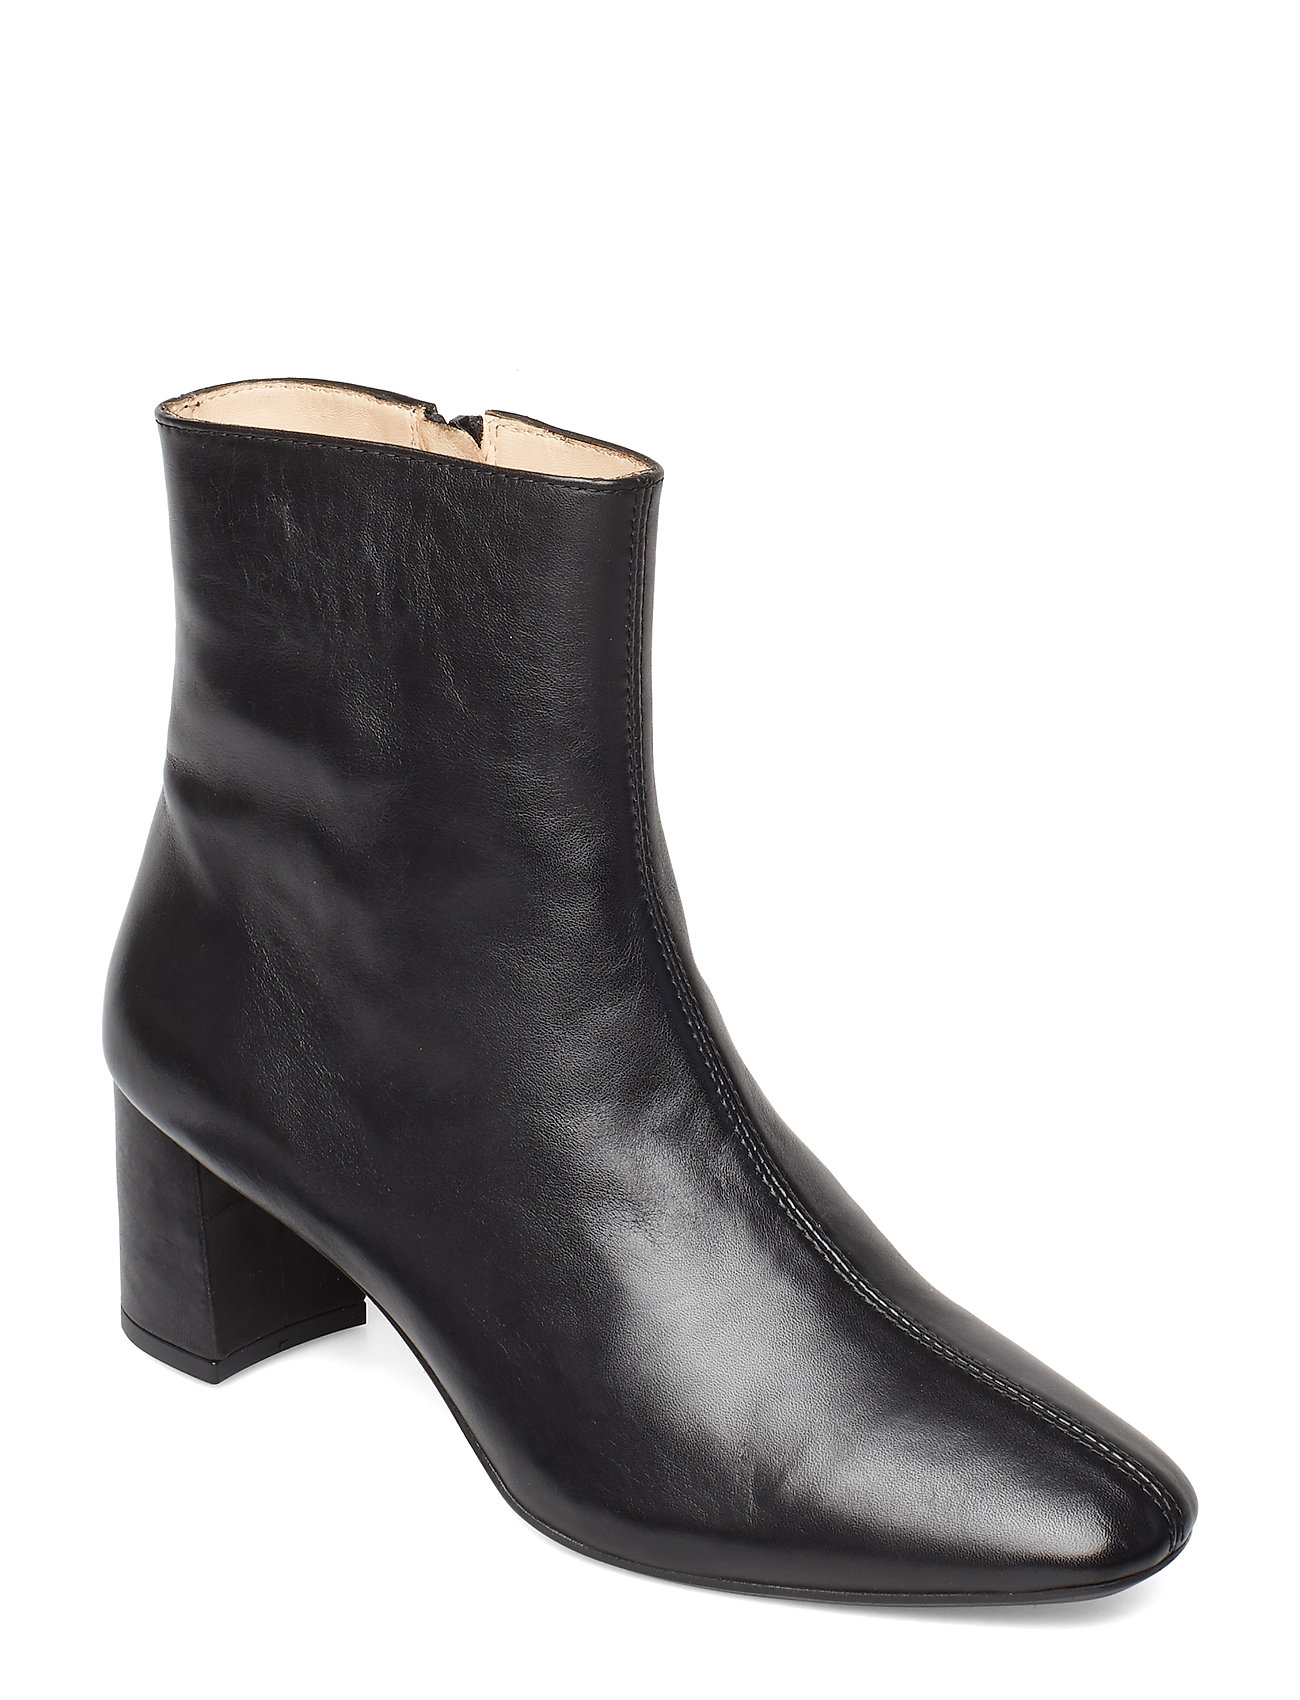 Image of Bootie - Block Heel - With Zippe Shoes Boots Ankle Boots Ankle Boot - Heel Sort ANGULUS (3483608705)